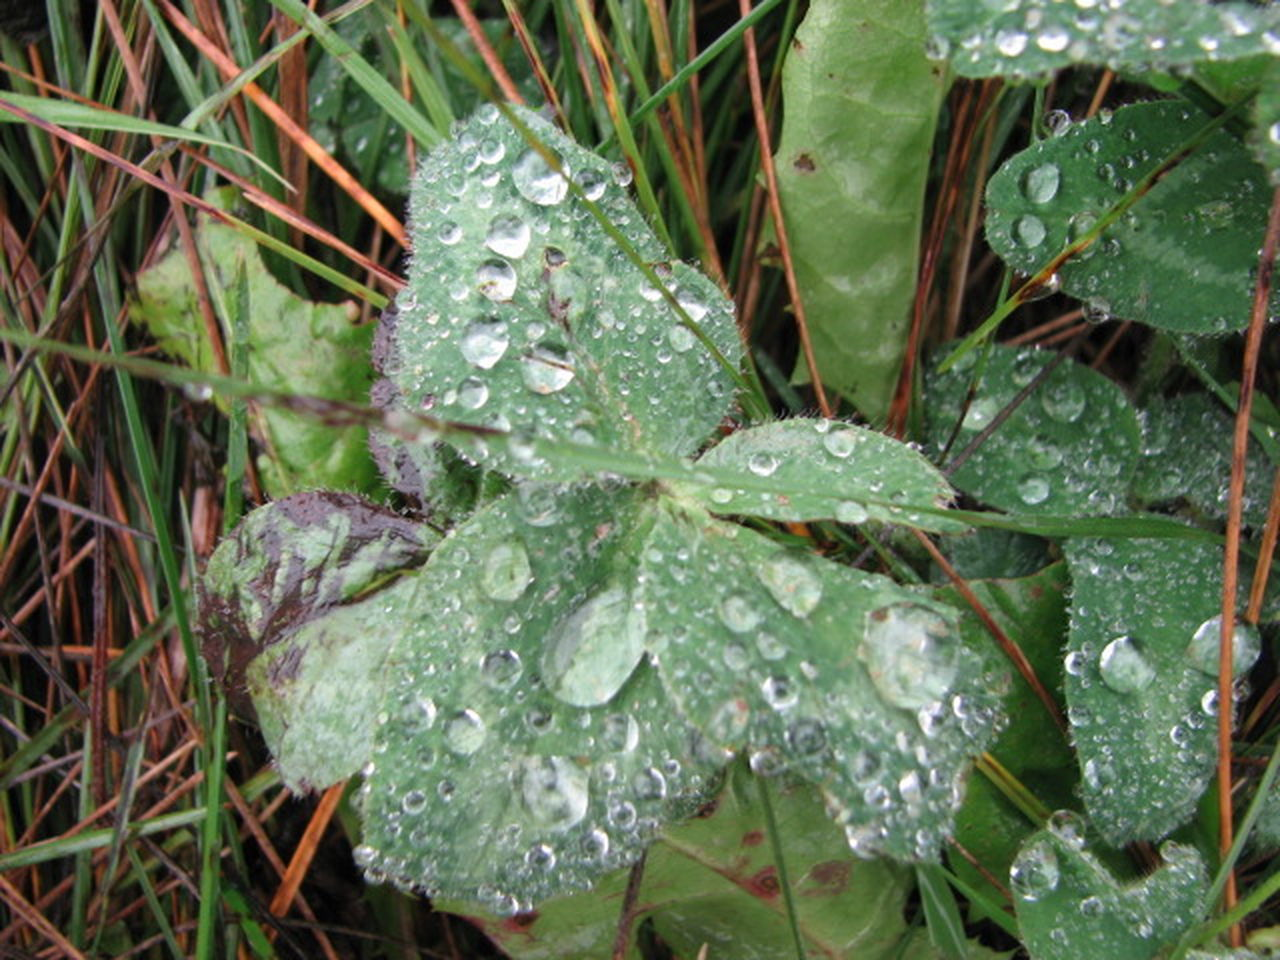 leaf, drop, nature, growth, water, wet, green color, beauty in nature, plant, freshness, no people, day, raindrop, close-up, outdoors, fragility